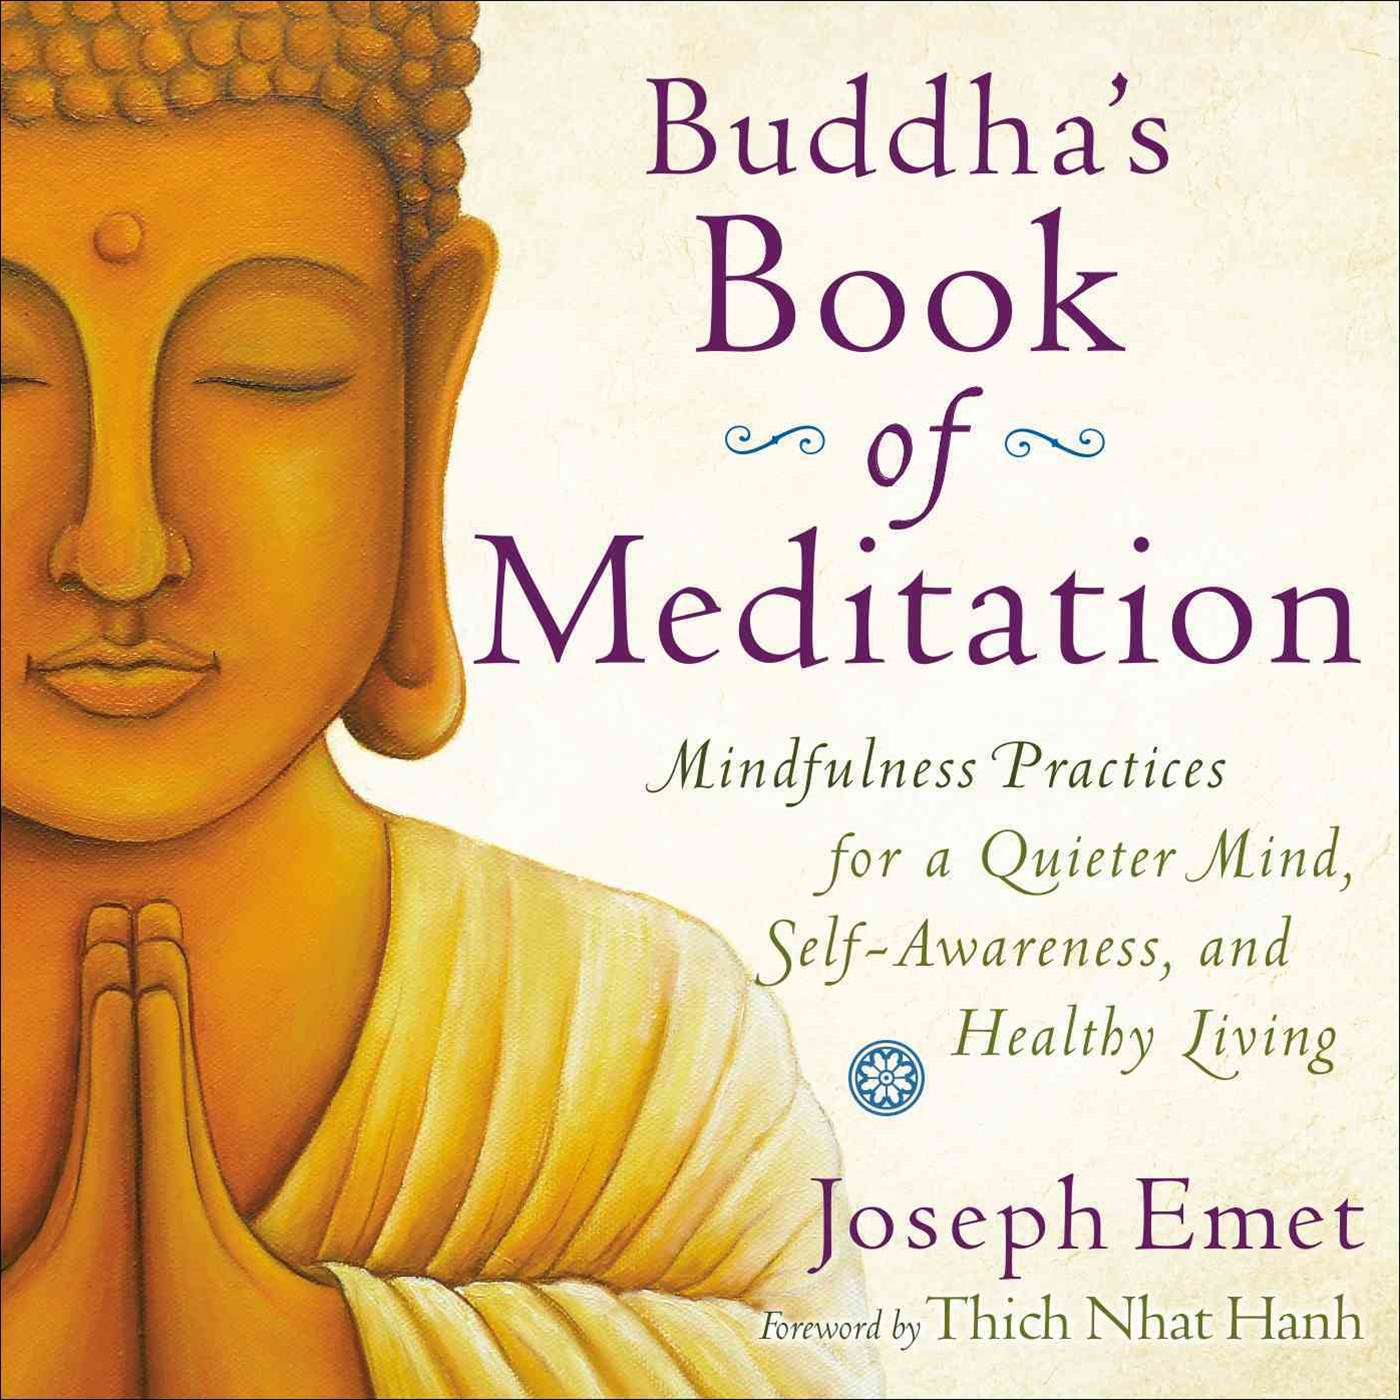 Buddha's Book Of Meditation: Mindfulness Practices For A Quieter Mind, Self-Awarness, And Healthy Living